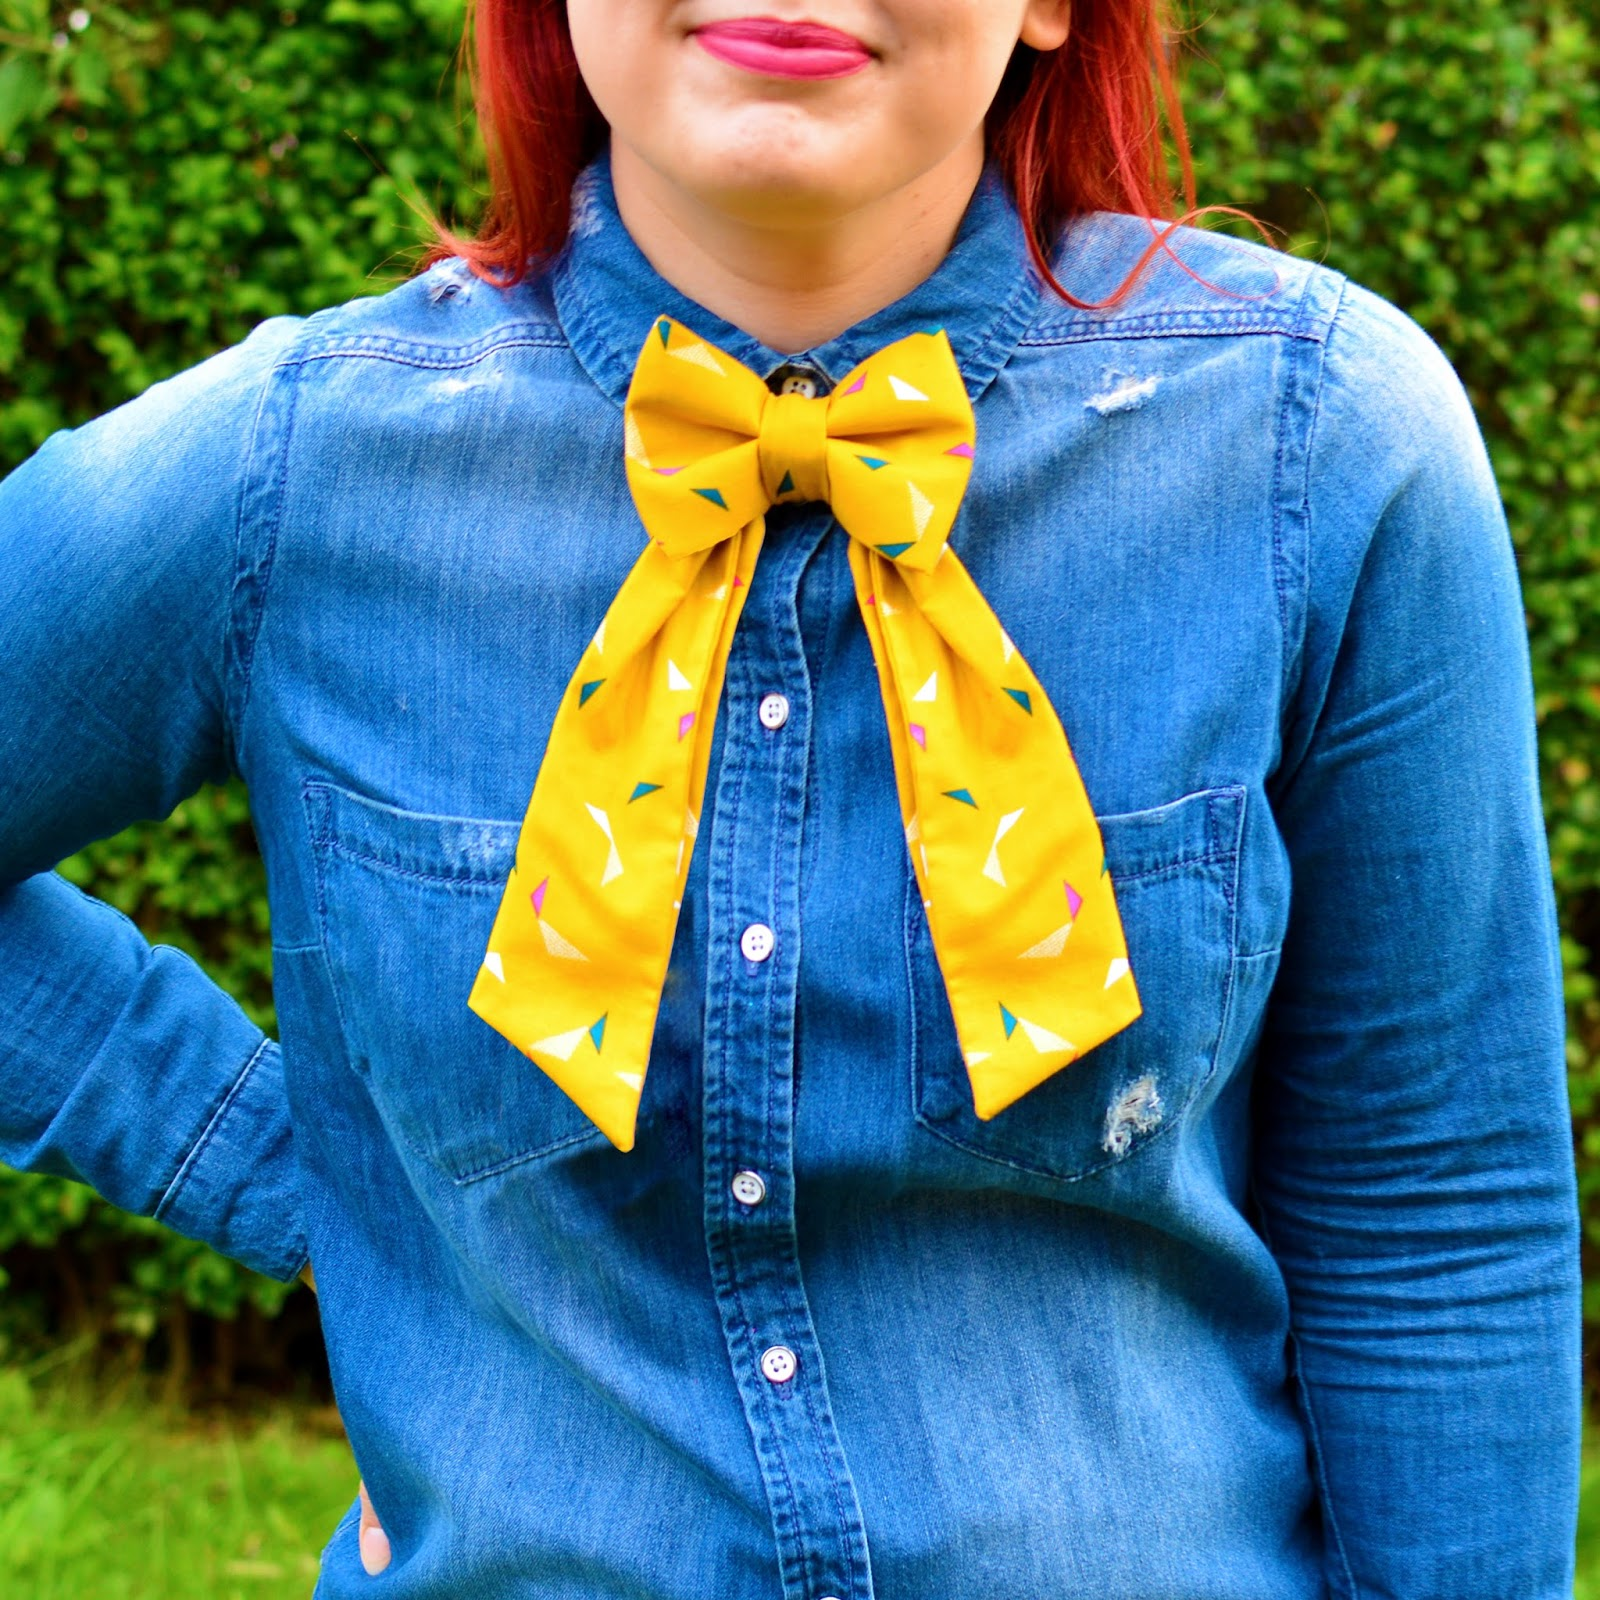 Adventures & Tea Parties bow ties for women